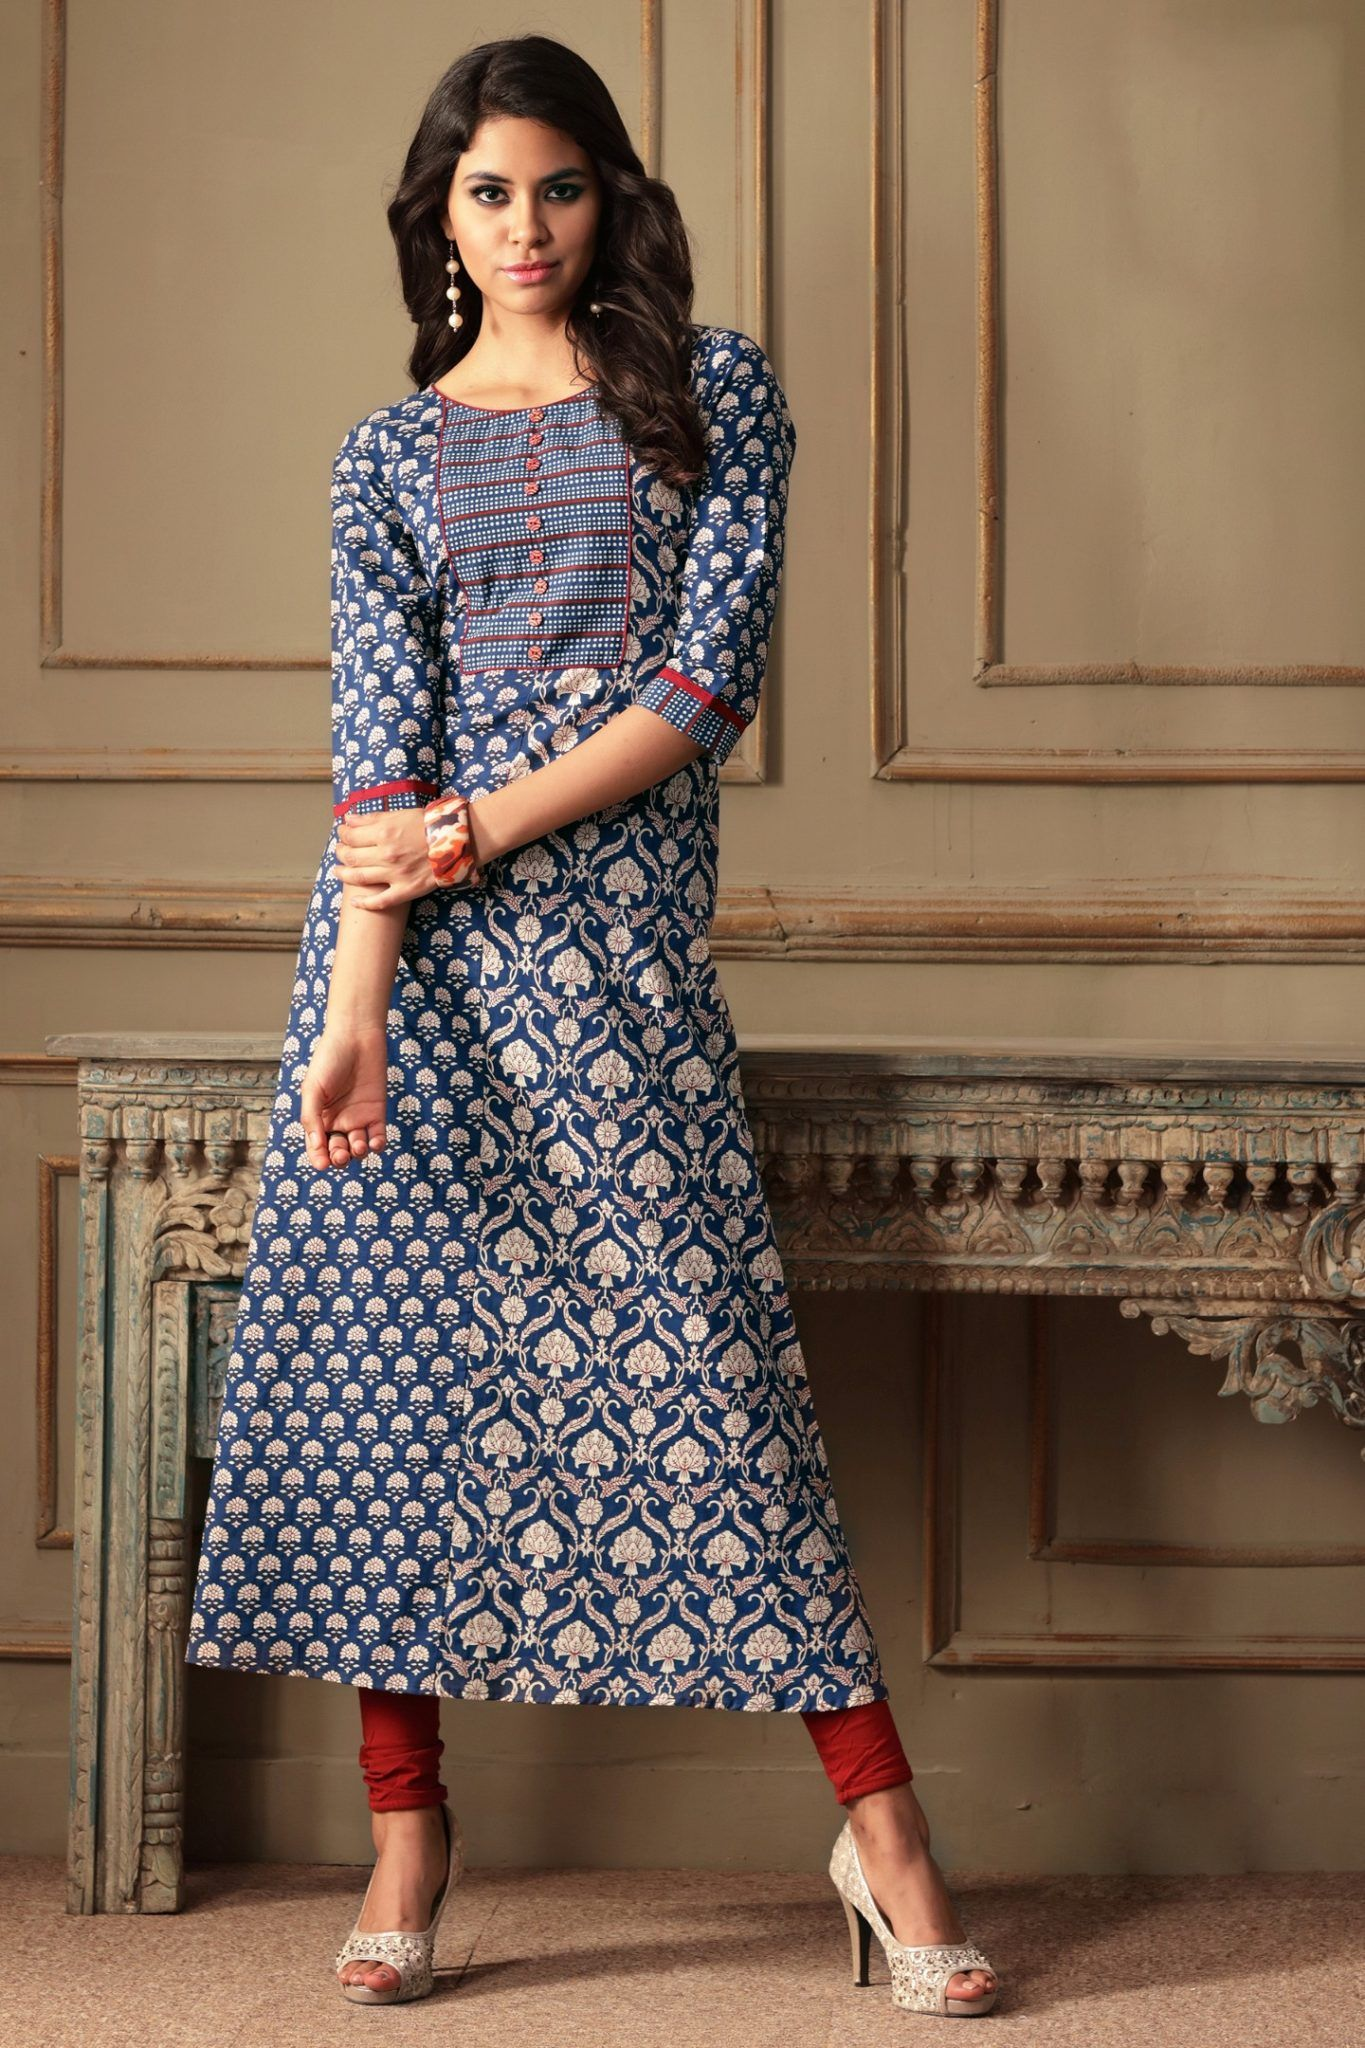 a4c5c2df085 Shop Online Latest Designs Party Wear Kurtis With Exciting Offers. Image  result for images of latest designer pakistani kurtis